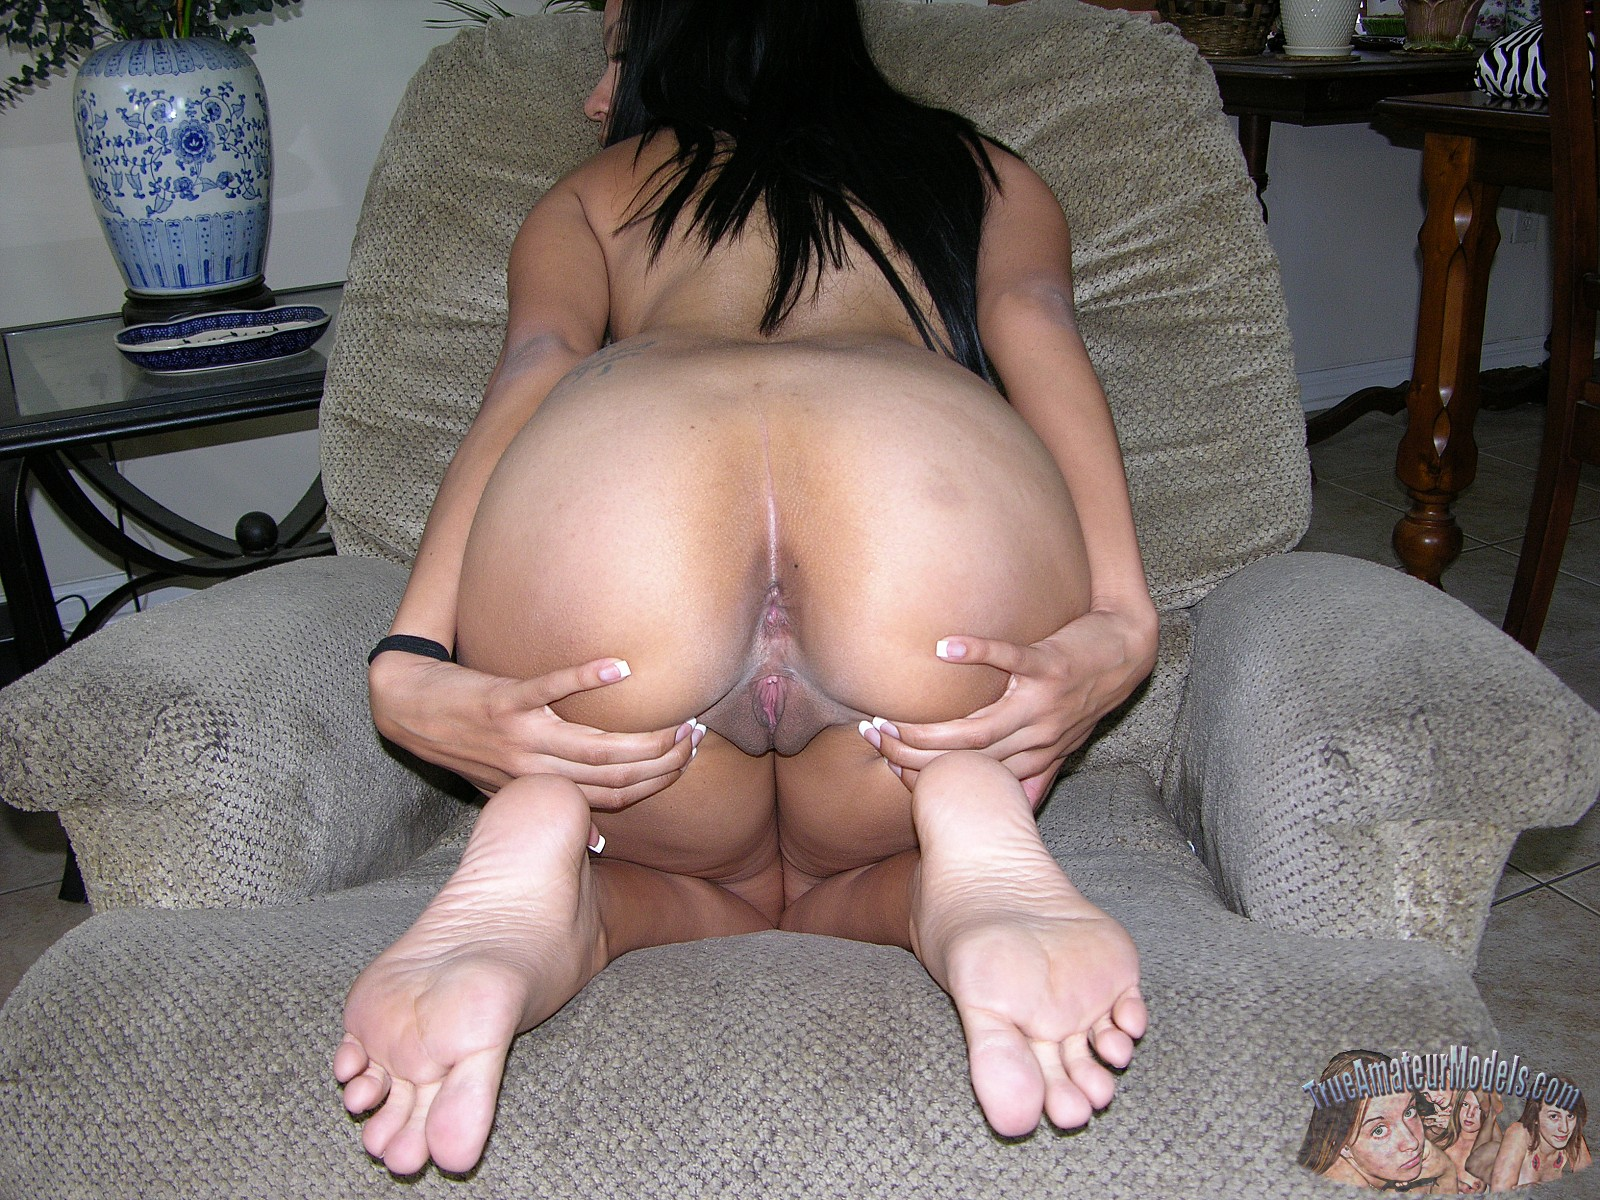 Mature women and young boy porno